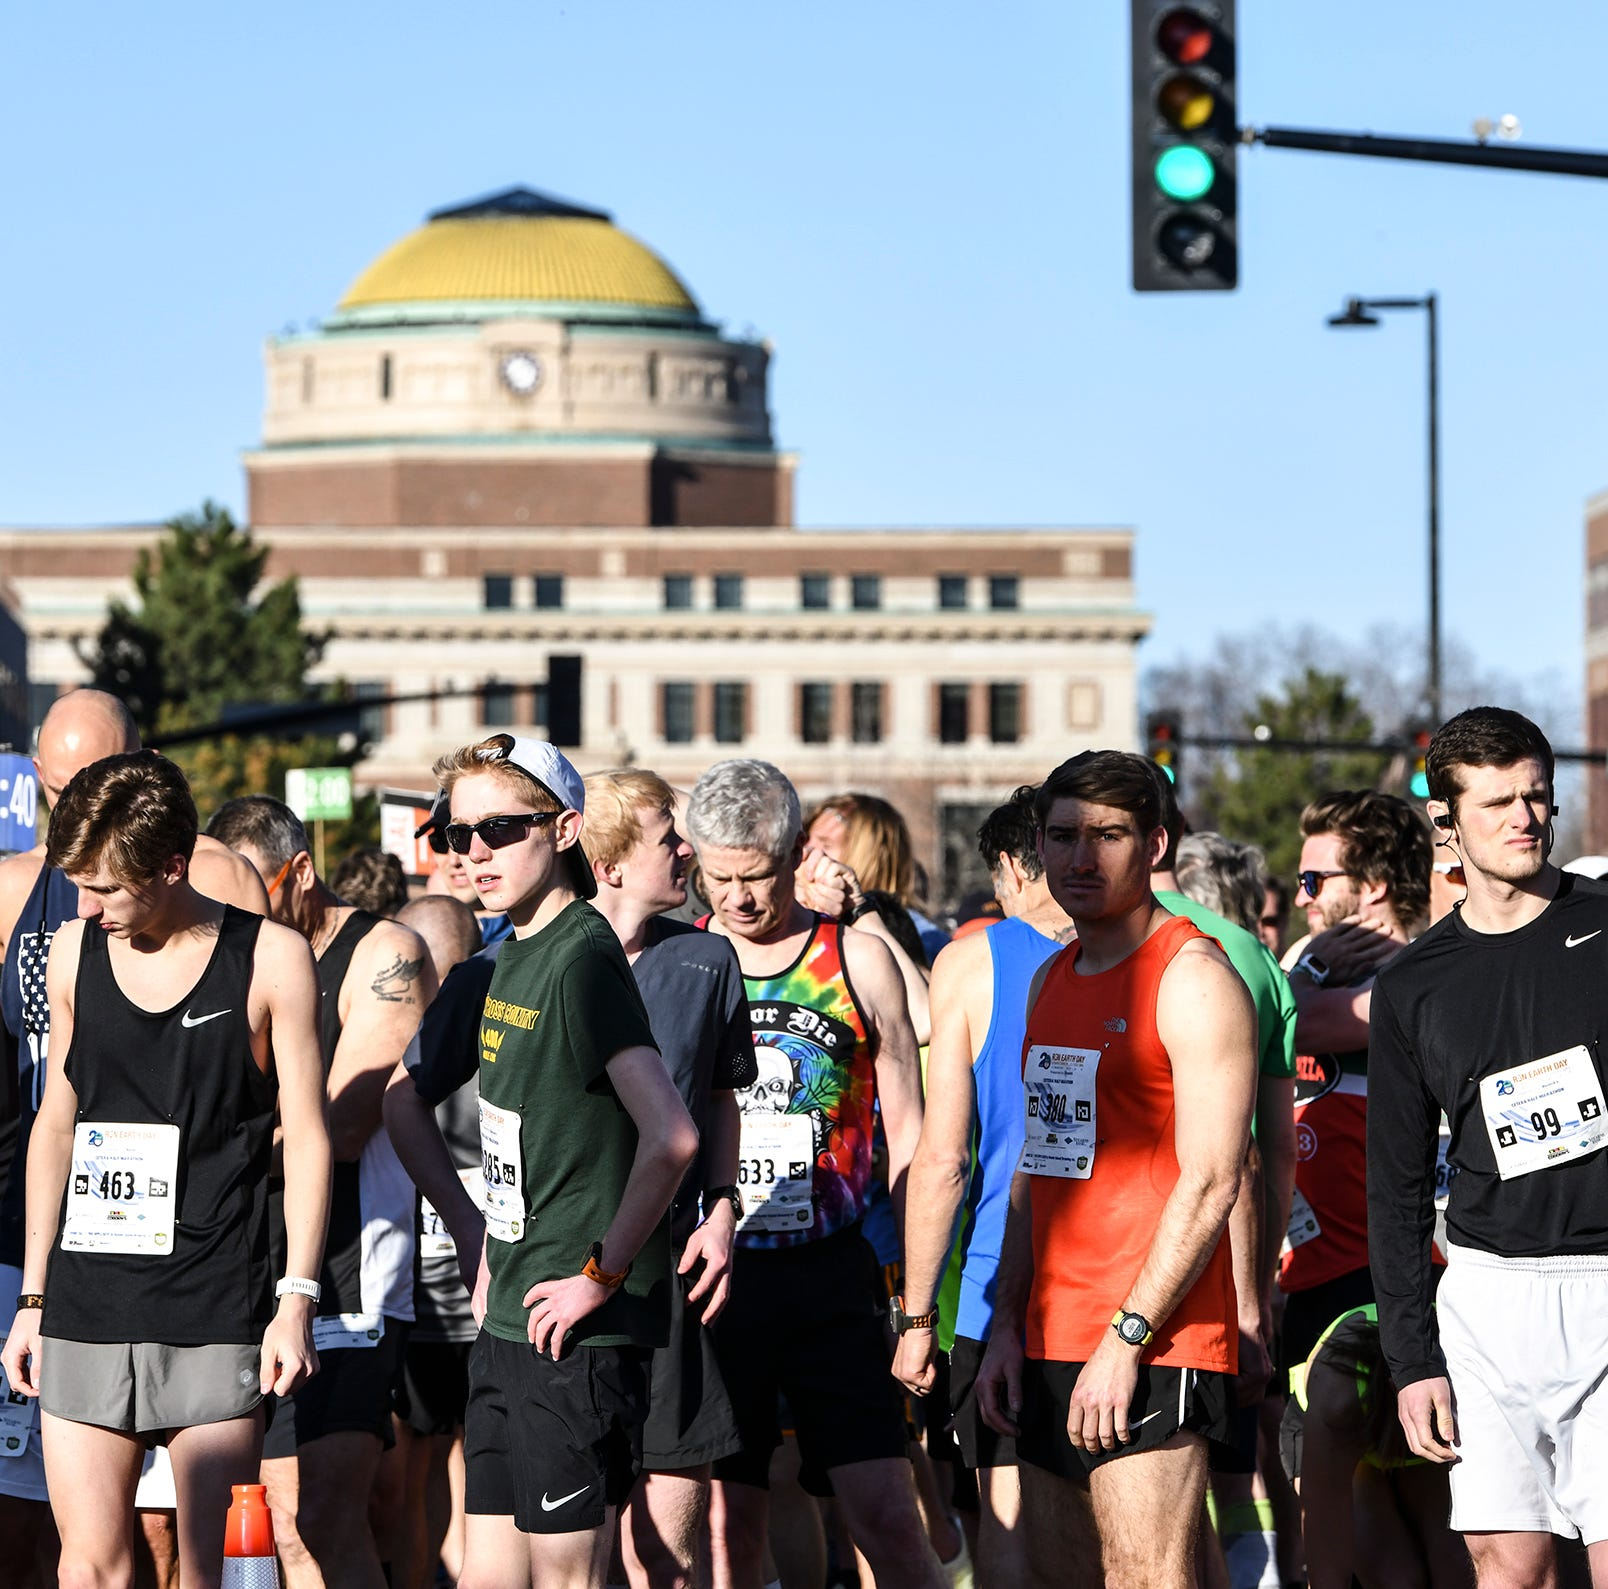 Race director: New Earth Day run route through downtown St. Cloud 'just incredible'